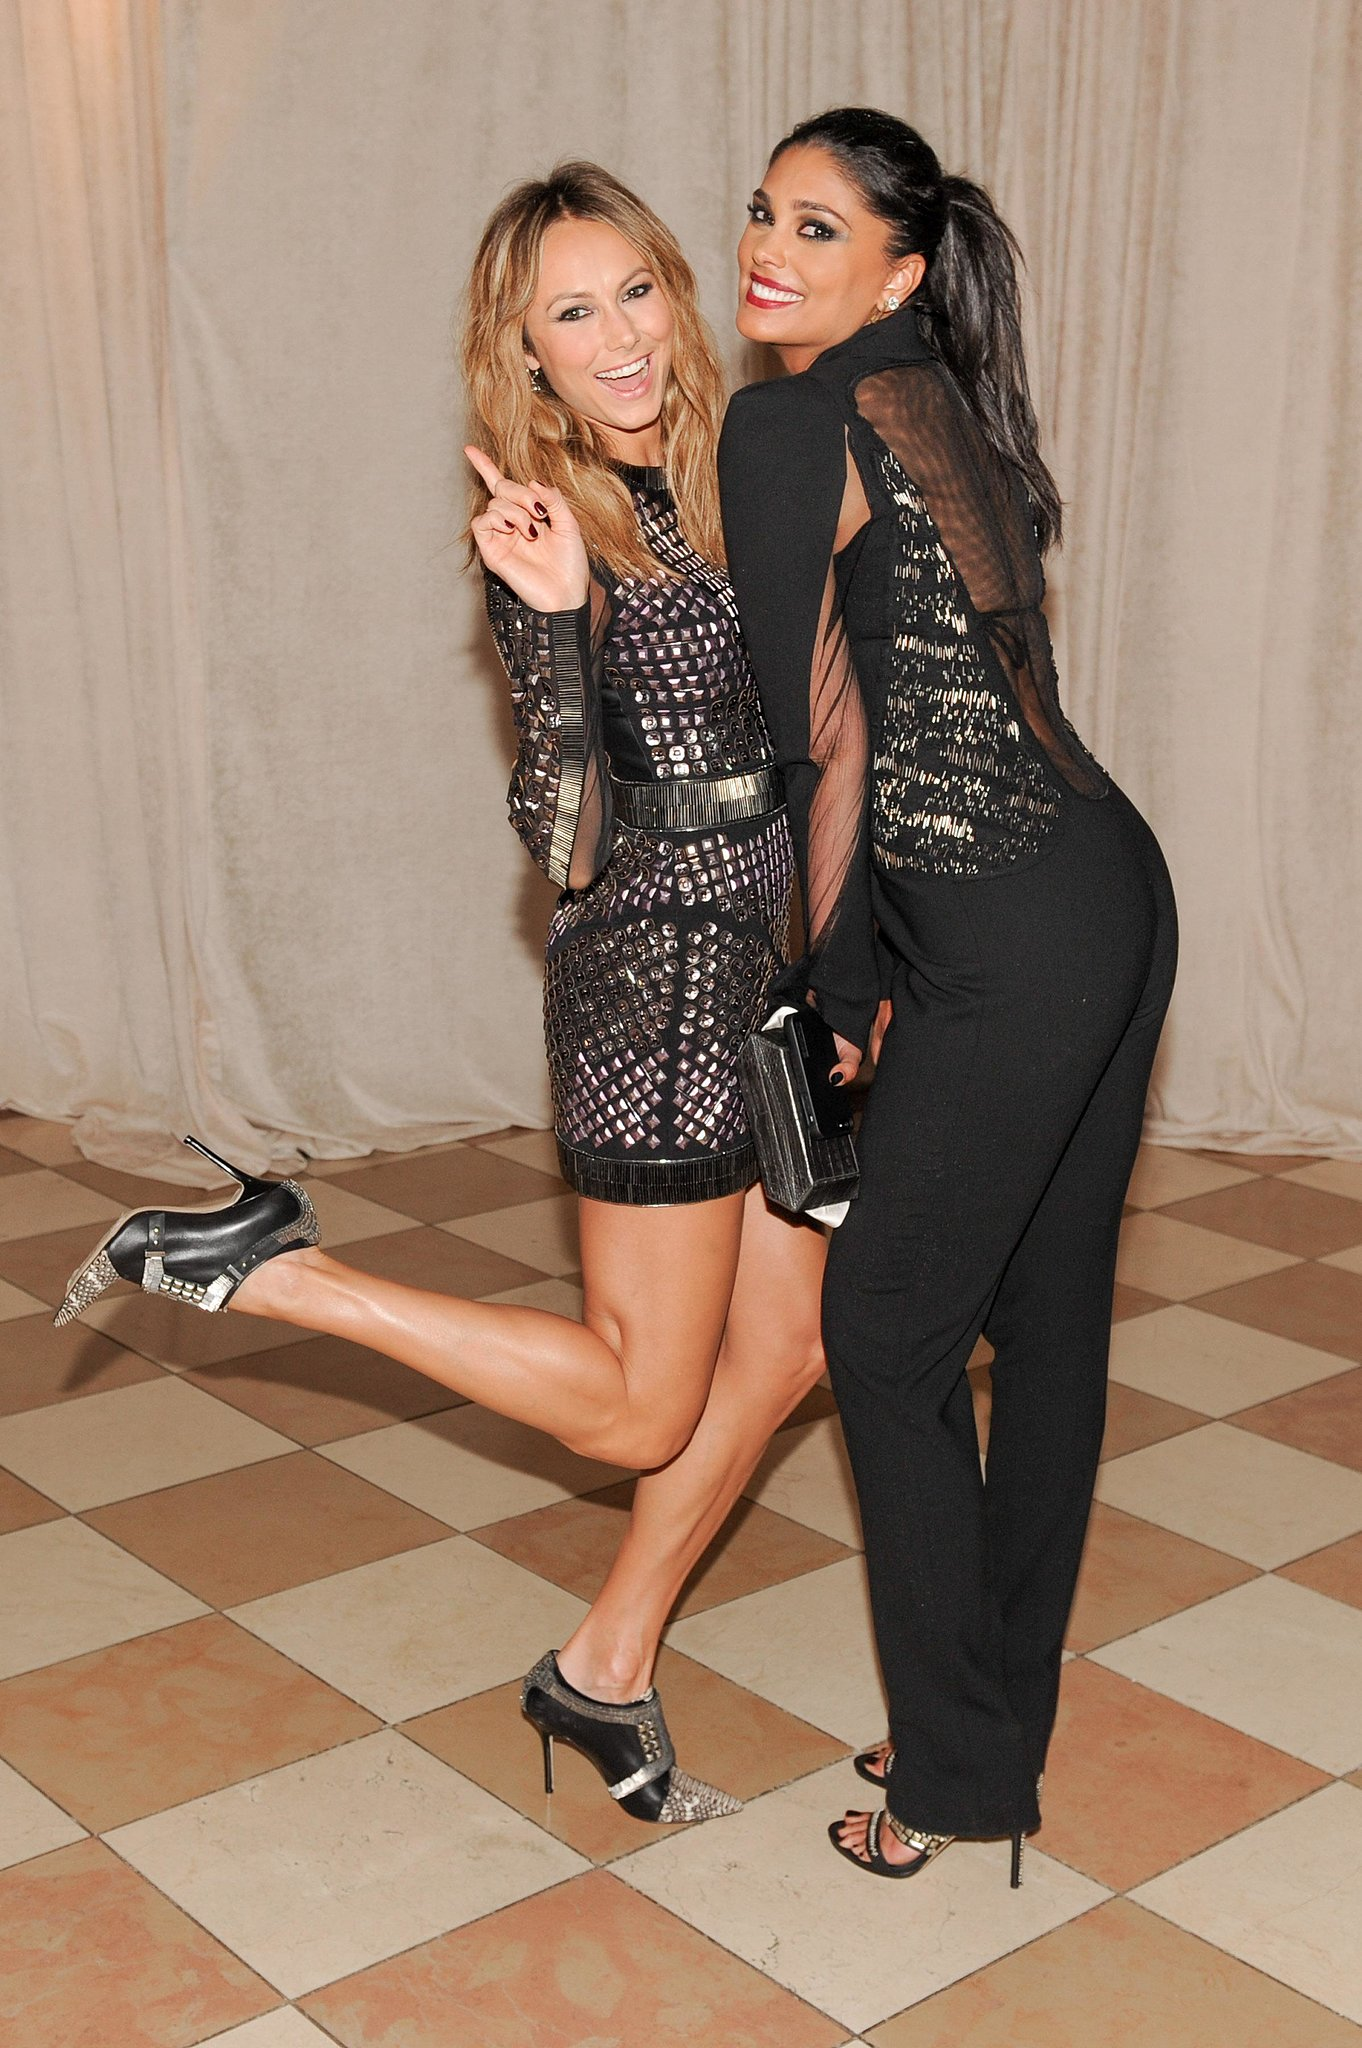 Stacy Keibler had a ball with Rachel Roy inside the Met G